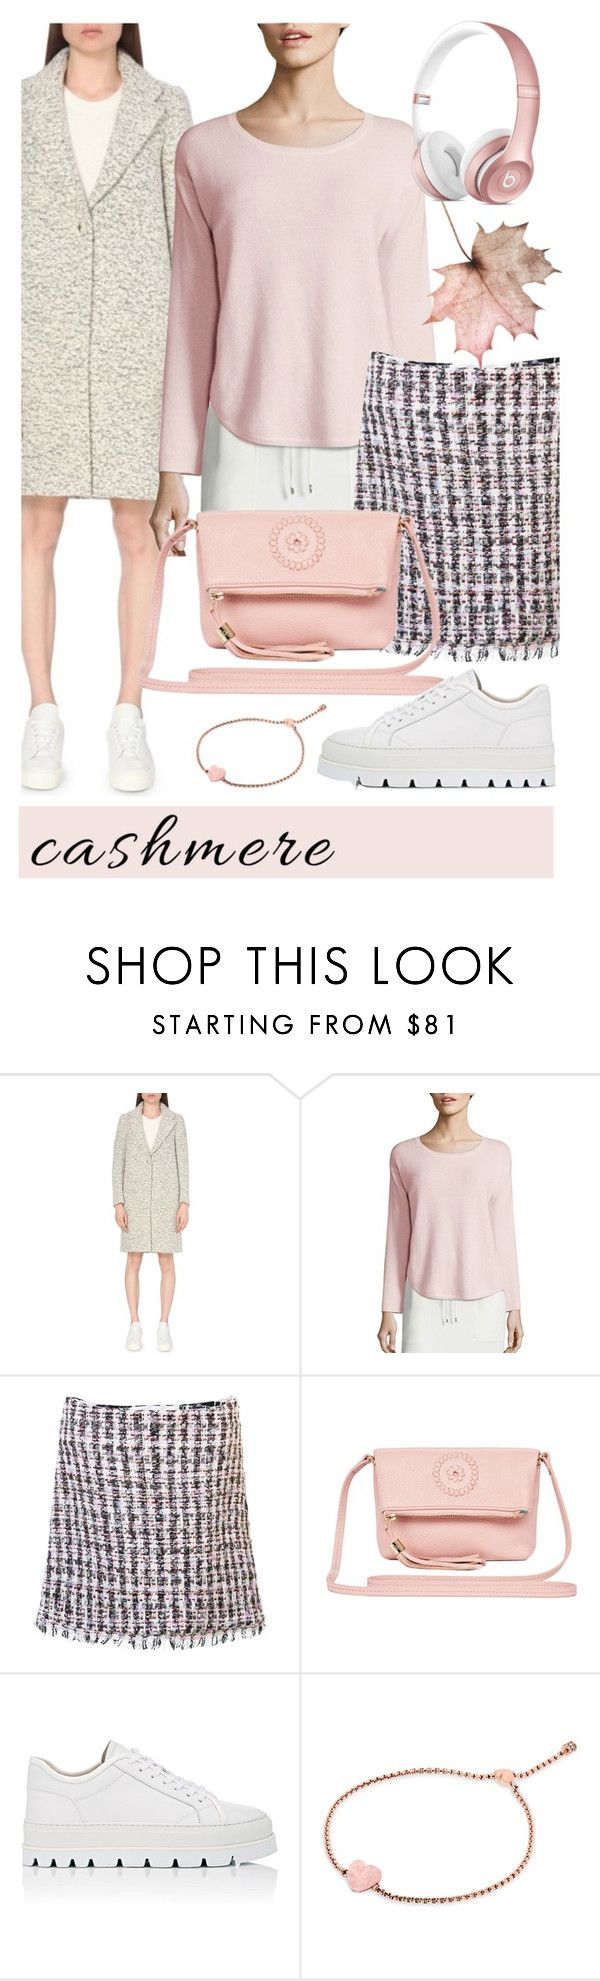 """""""Cashmere"""" by iojeni ❤ liked on Polyvore featuring Maje, Polo Ralph Lauren, Sandy Liang, Jack Rogers, Maison Margiela, Michael Kors and Beats by Dr. Dre"""